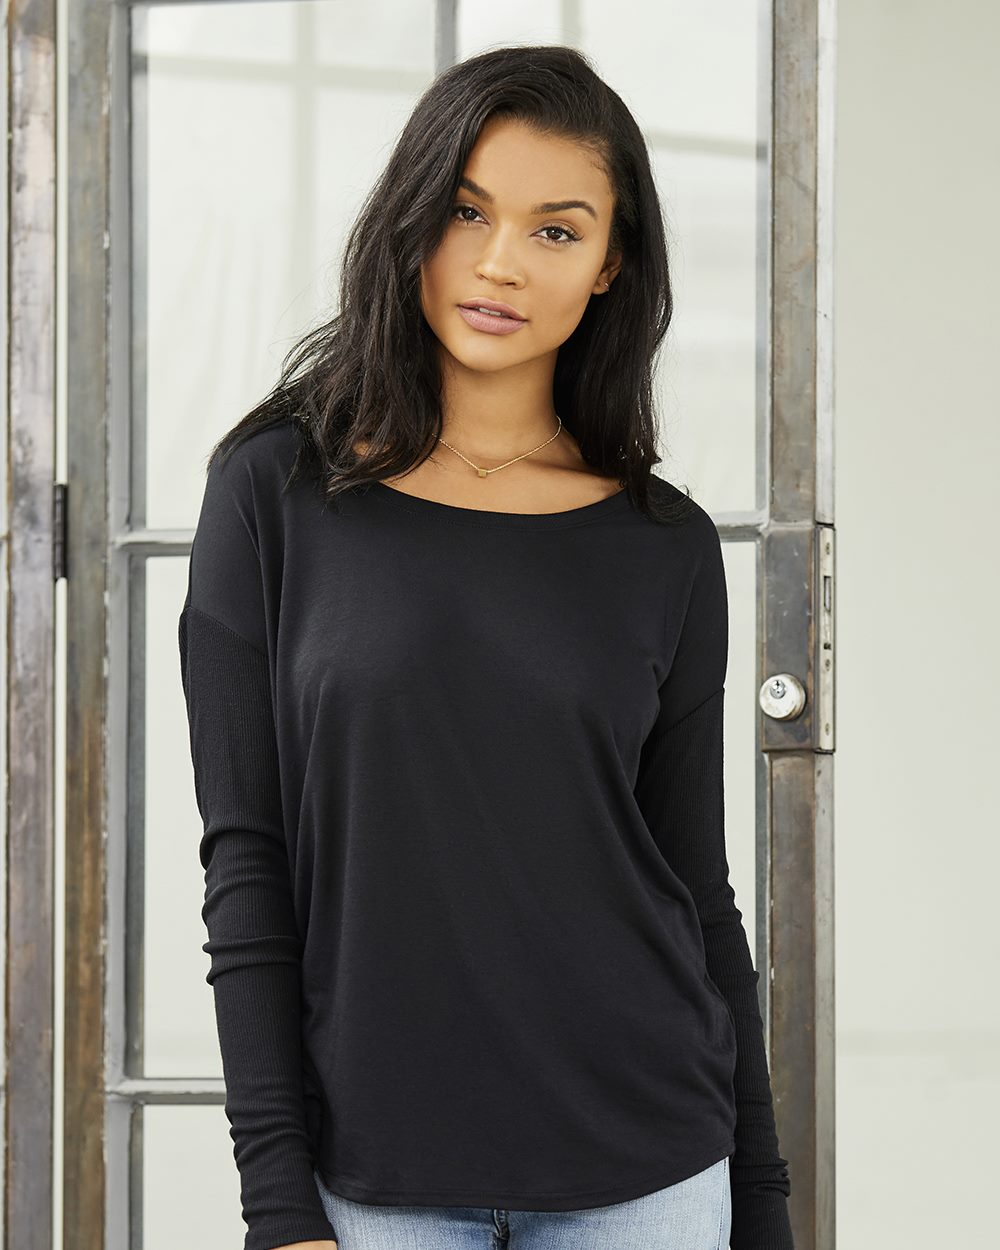 Bella + Canvas Women's Flowy Long Sleeve Tee with 2x1 Sleeves